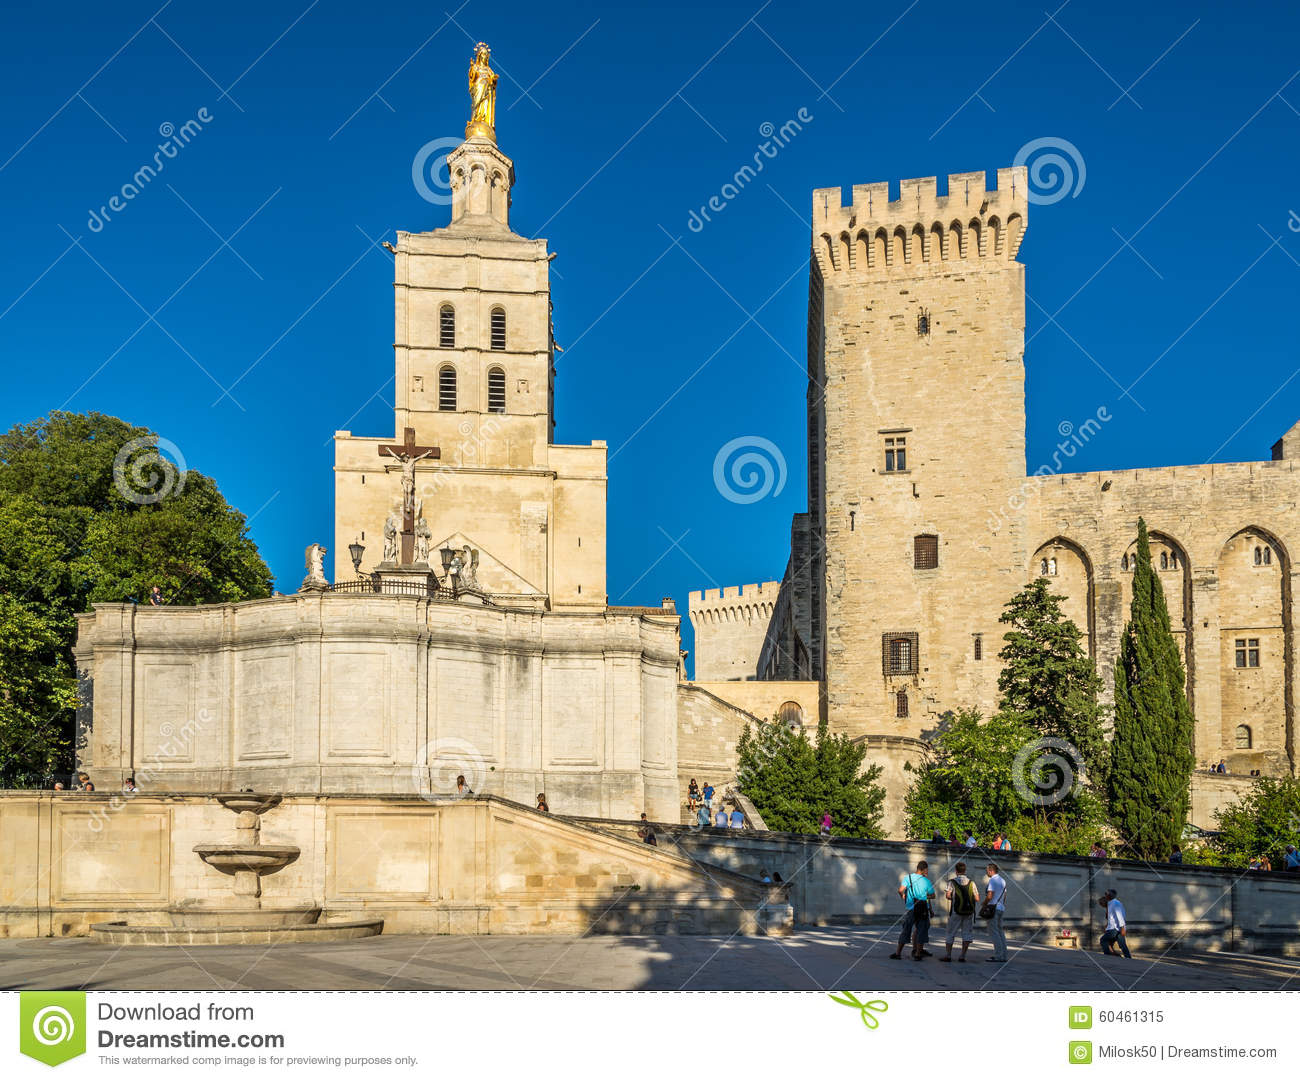 kathedrale von notre dame des doms in avignon redaktionelles bild bild von frankreich dame. Black Bedroom Furniture Sets. Home Design Ideas